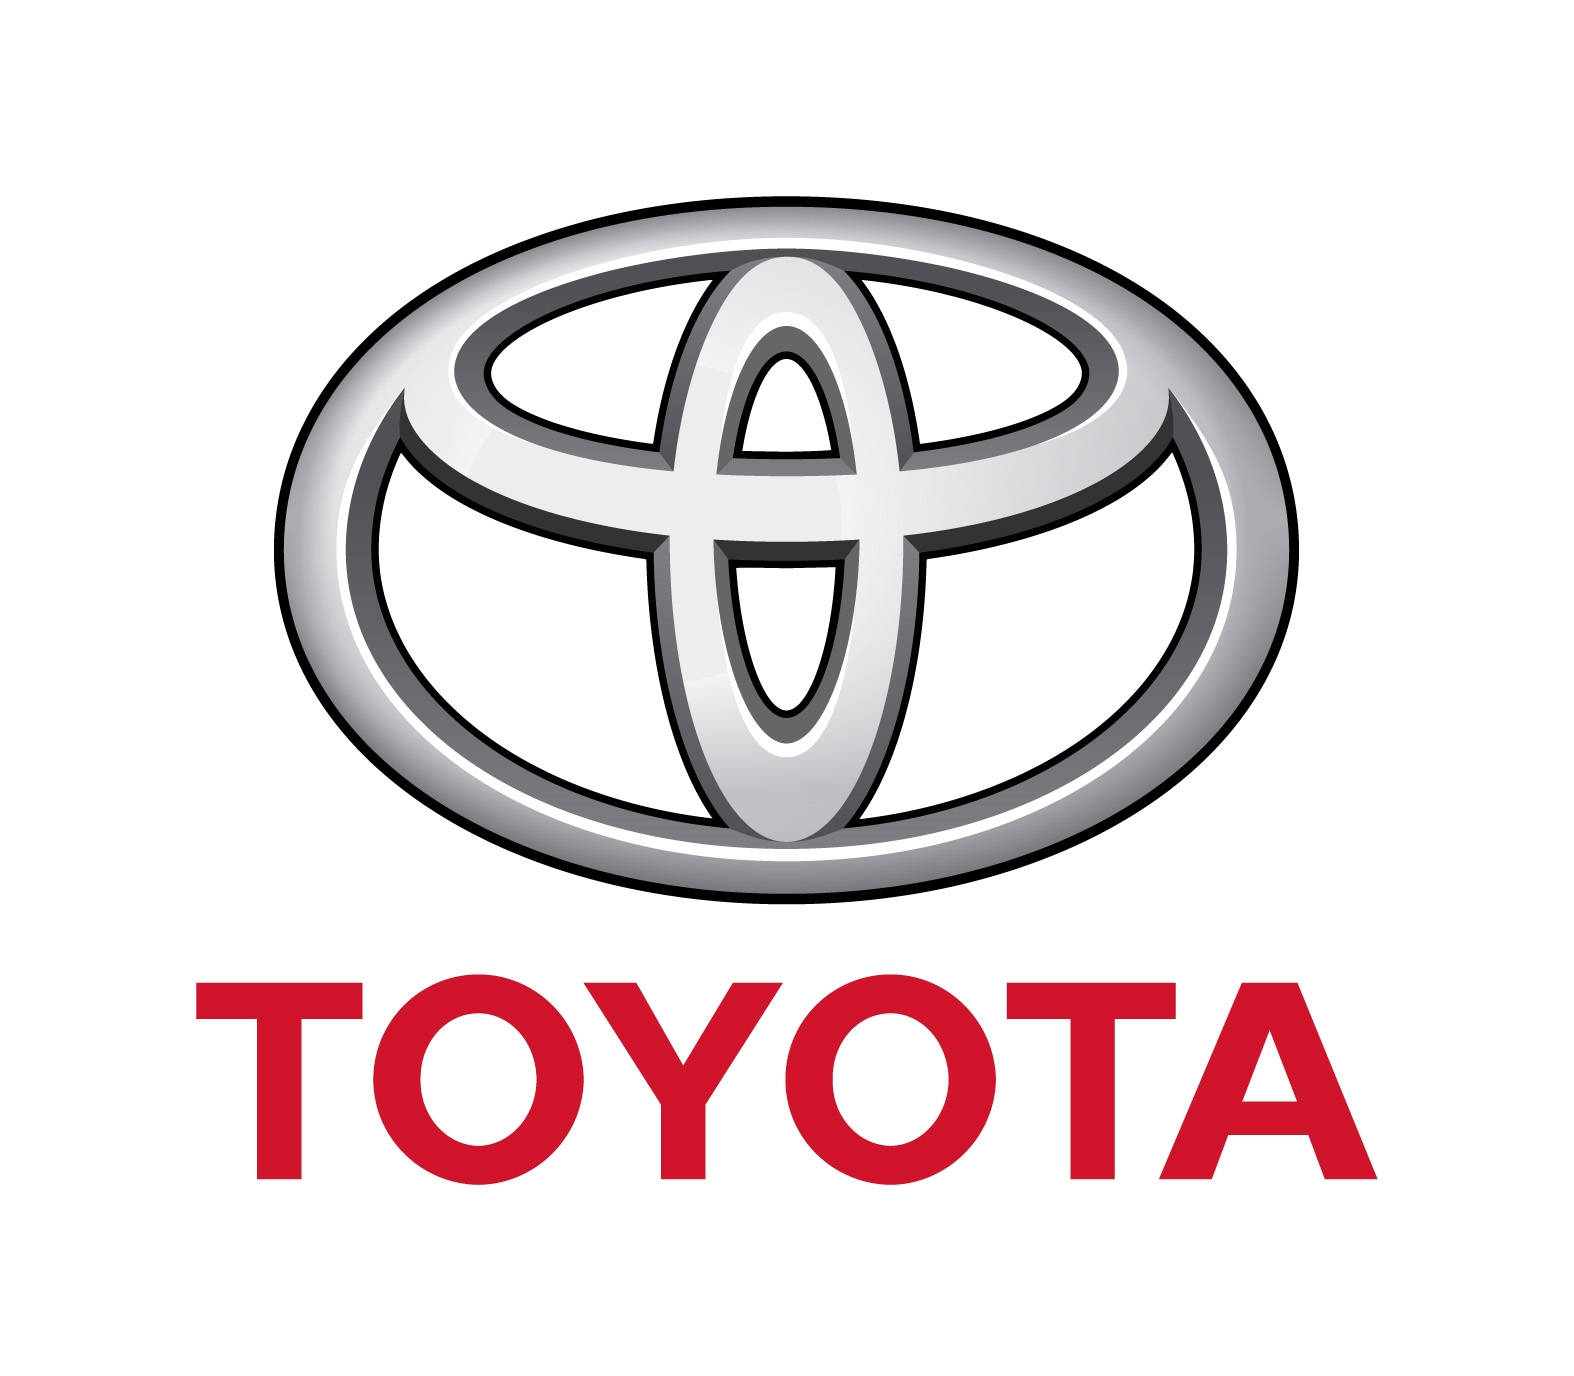 Toyota logo toyota car symbol meaning and history car brand toyota logo biocorpaavc